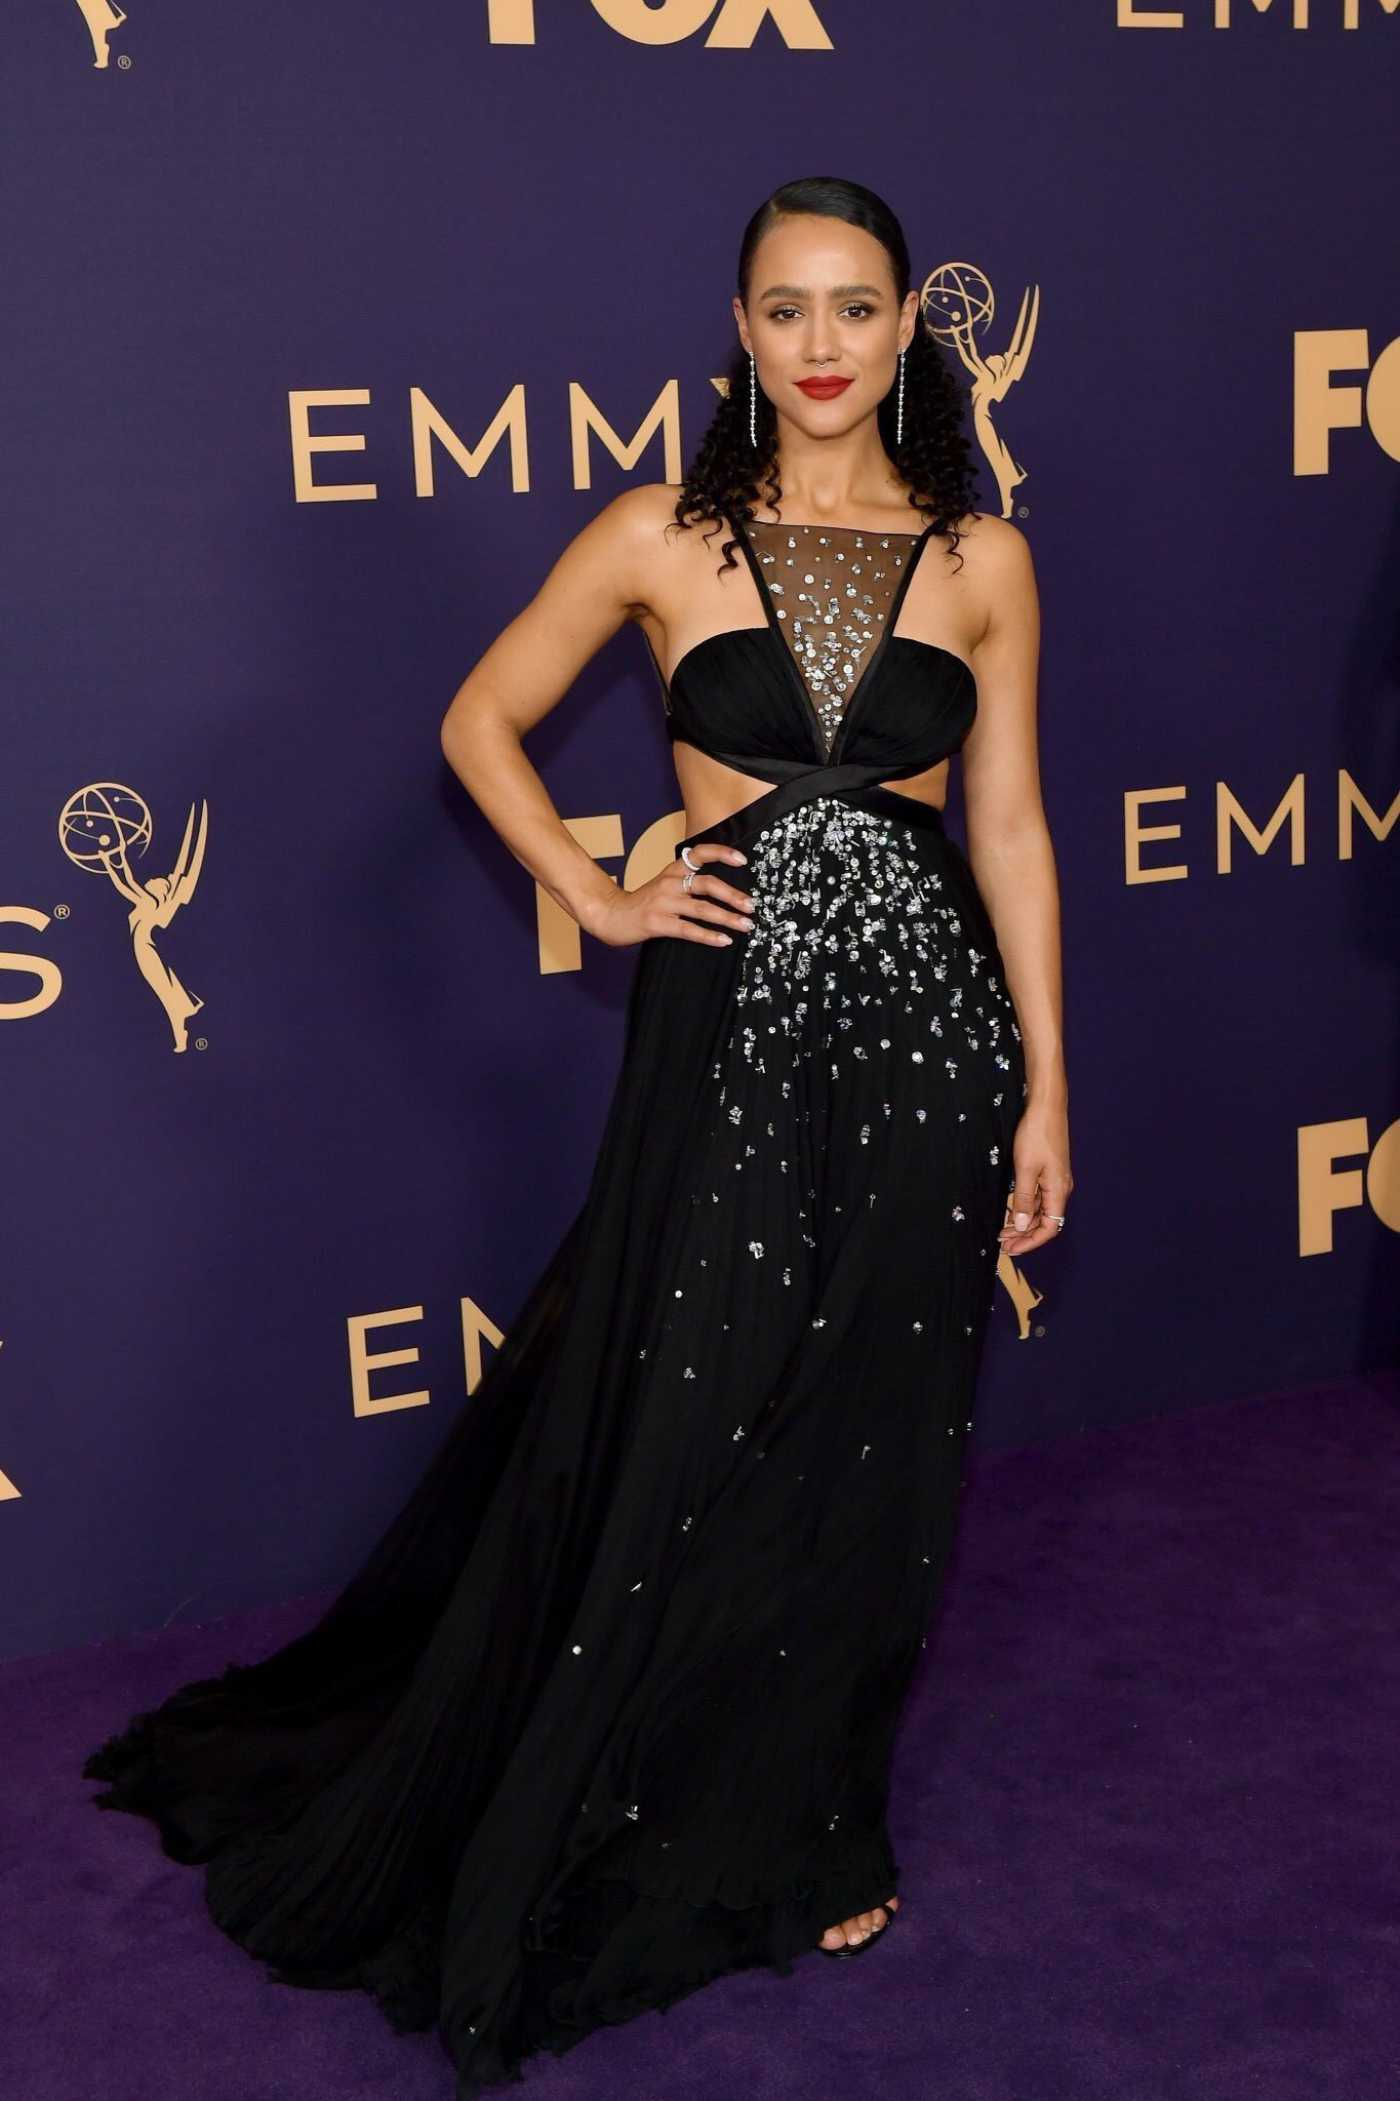 Nathalie Emmanuel Attends the 71st Emmy Awards at Microsoft Theater in Los Angeles 09/22/2019